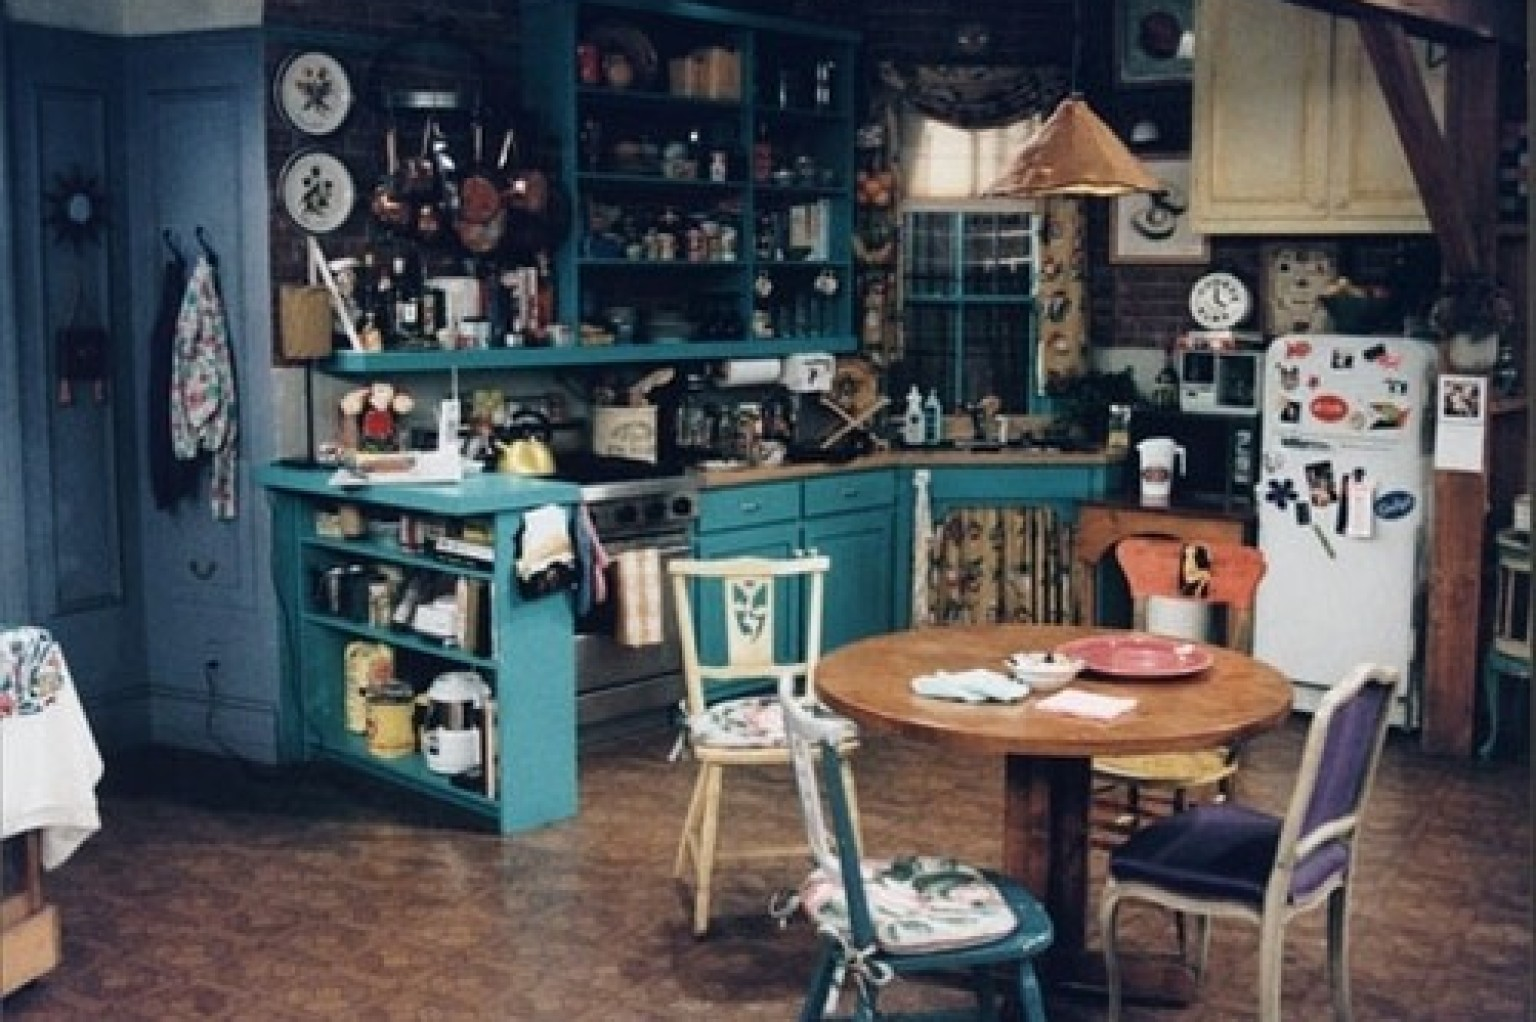 House design tv series - 7 Decorating Lessons We Learned From Friends Photos Gifs Huffpost